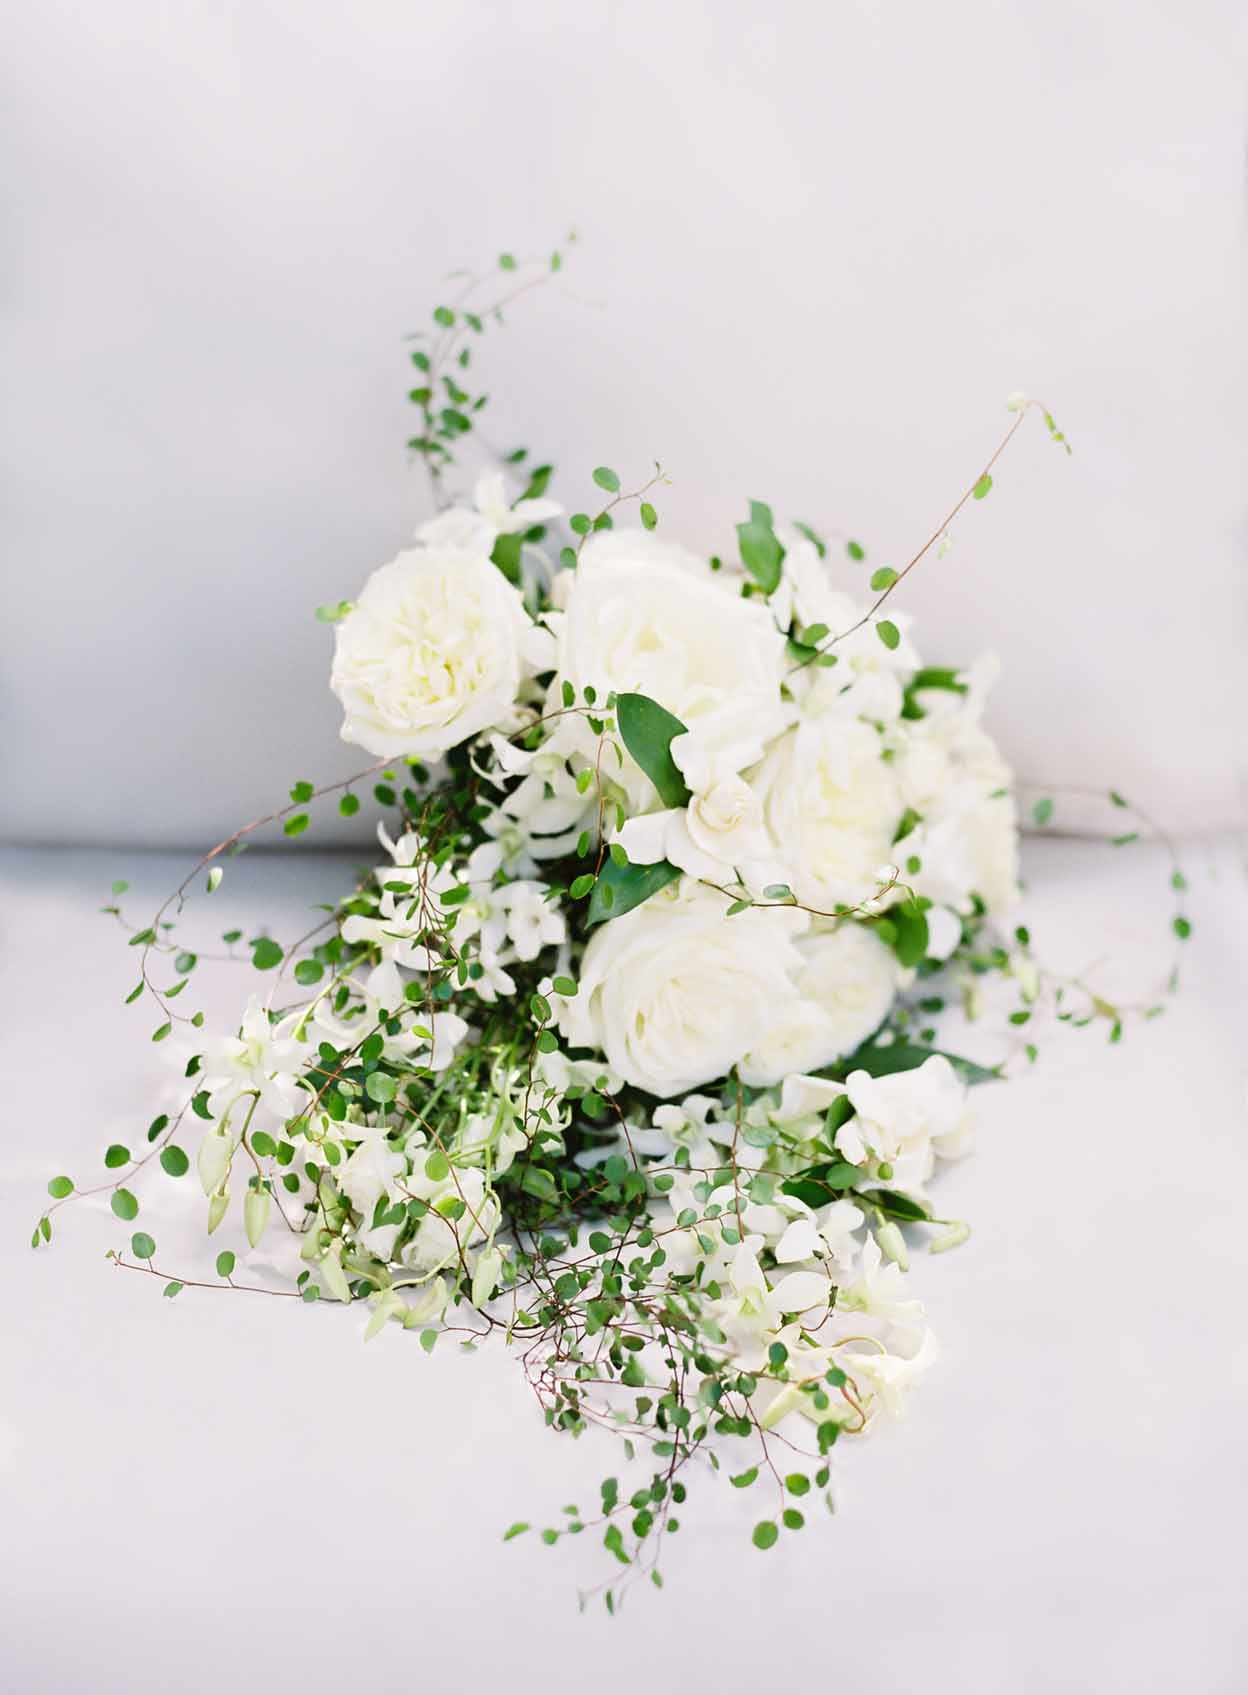 Bridal Bouquet of white roses, white orchids, iron wire greenery - White and Green Wedding, Flora Nova Design